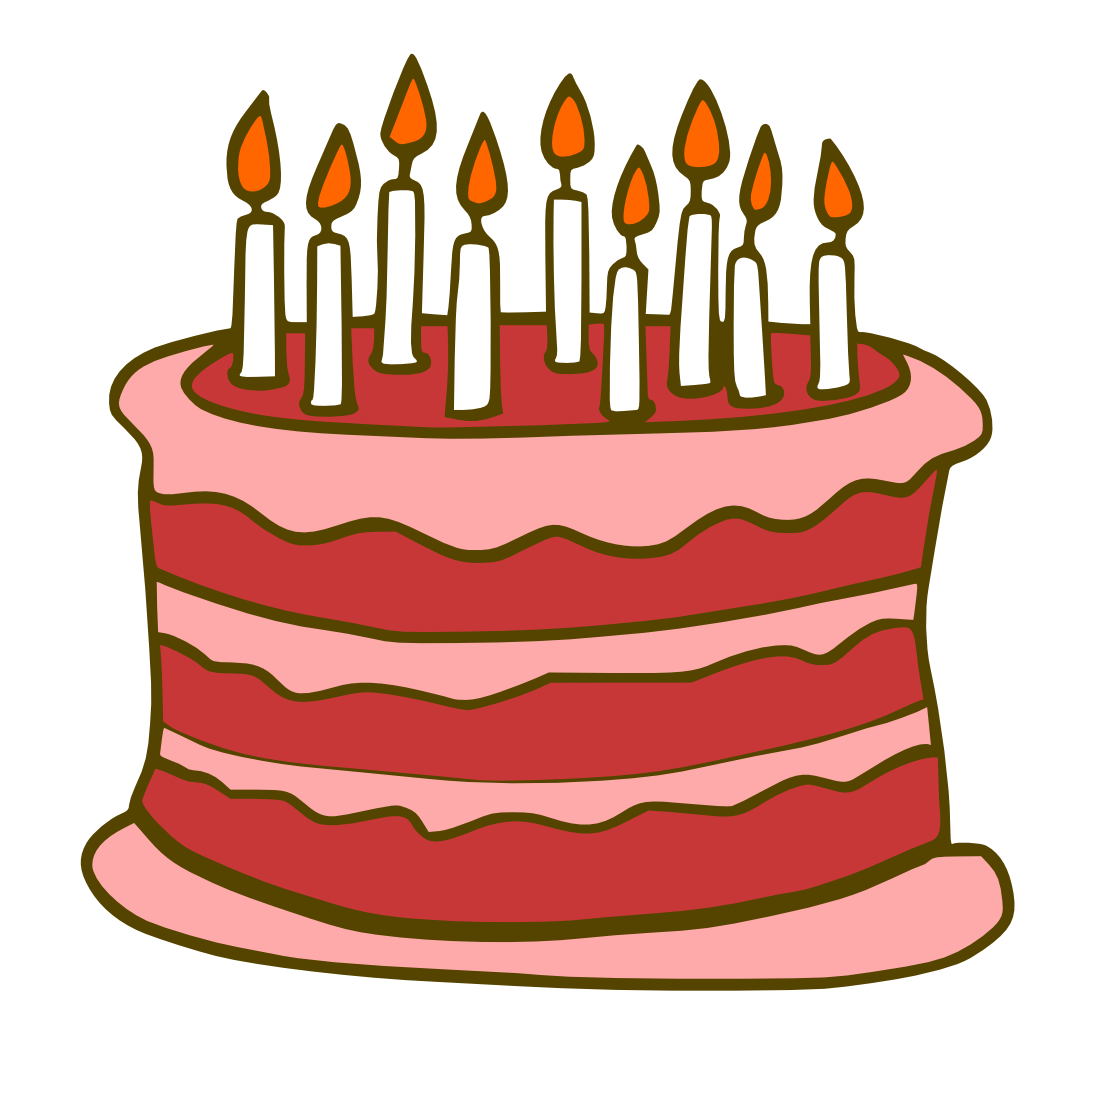 Birthday Cake Graphic - ClipArt Best